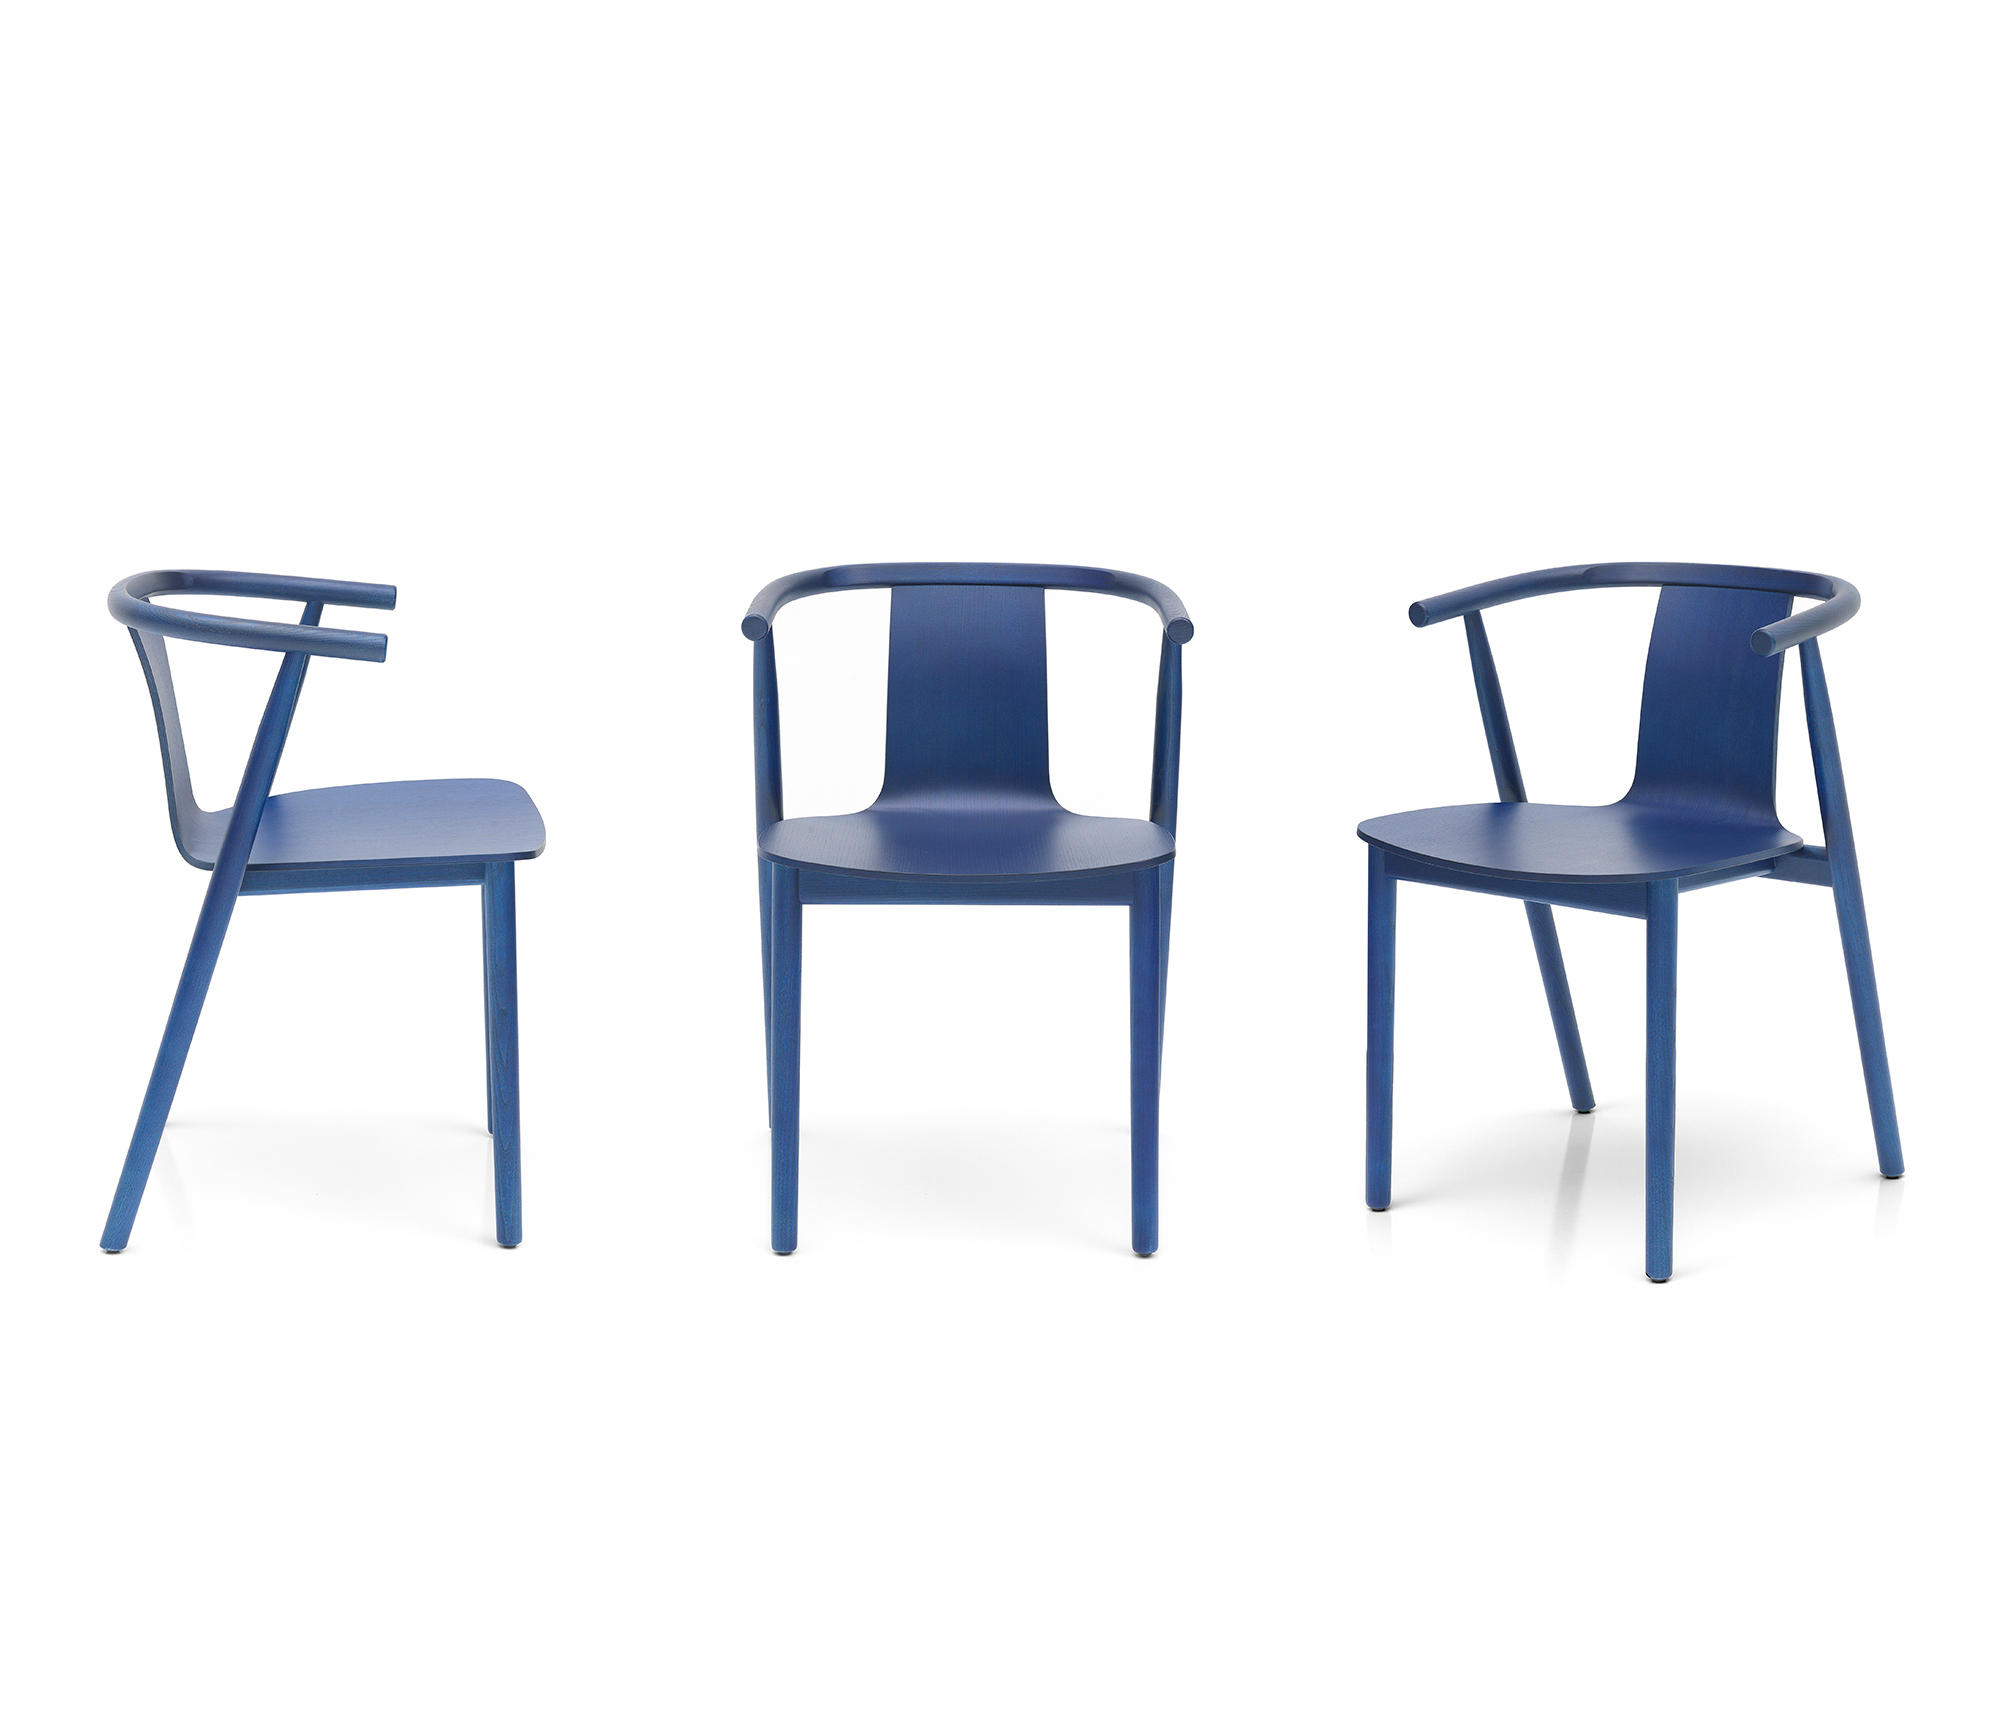 bac  restaurant chairs from cappellini  architonic - bac by cappellini  restaurant chairs · bac by cappellini  restaurantchairs